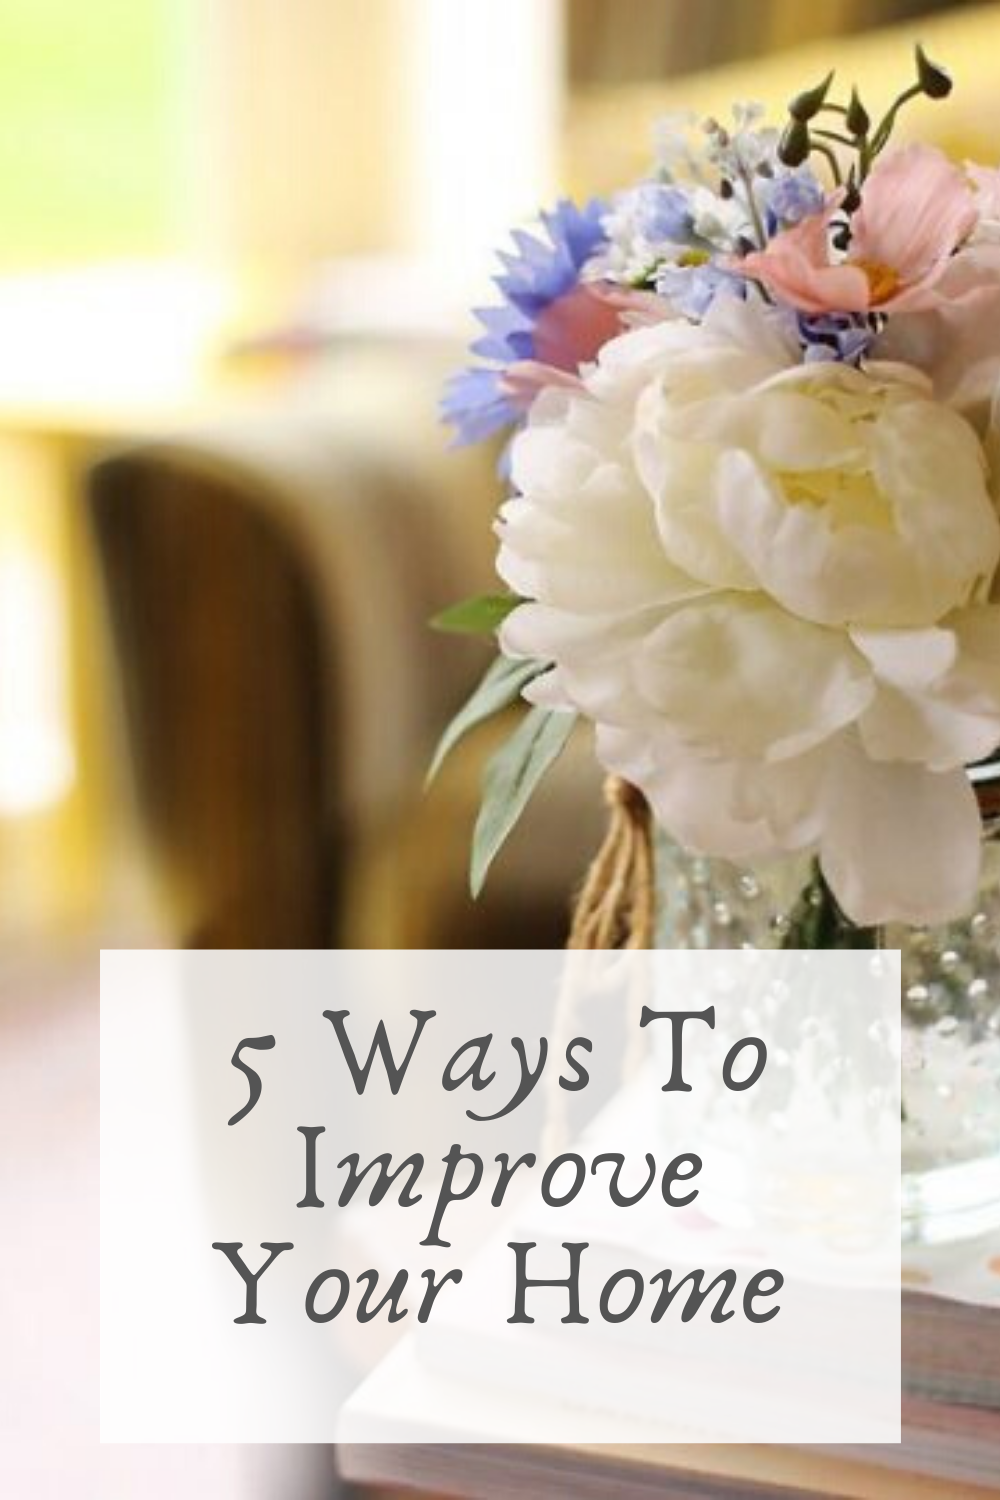 5 ways to improve your home